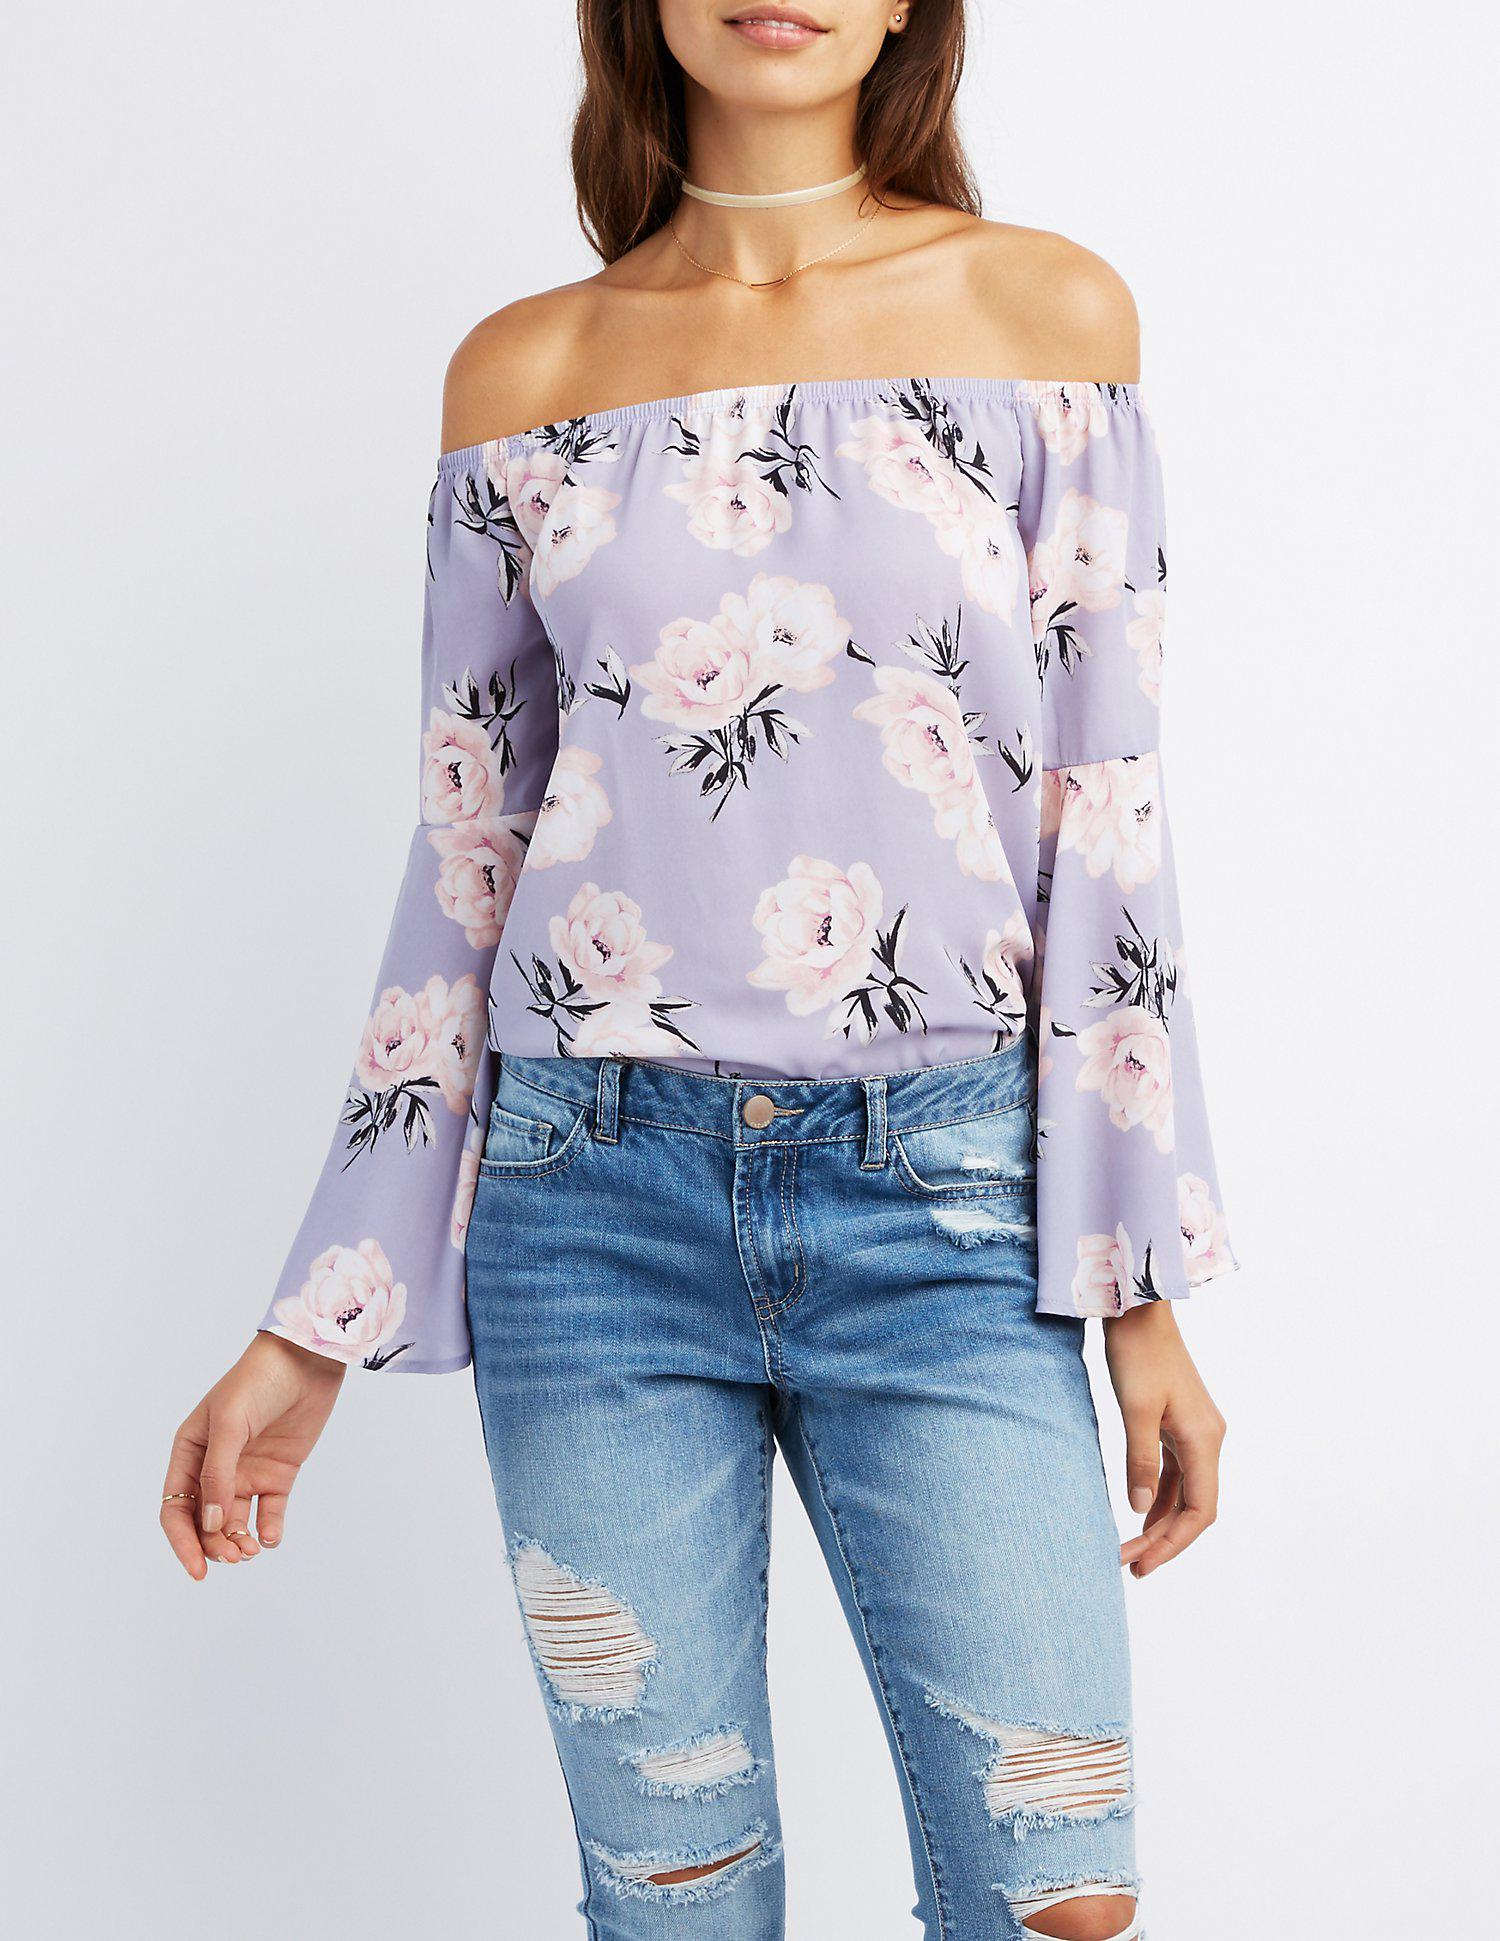 86305c470e635 Lyst - Charlotte Russe Floral Off-the-shoulder Bell Sleeve Top in Blue